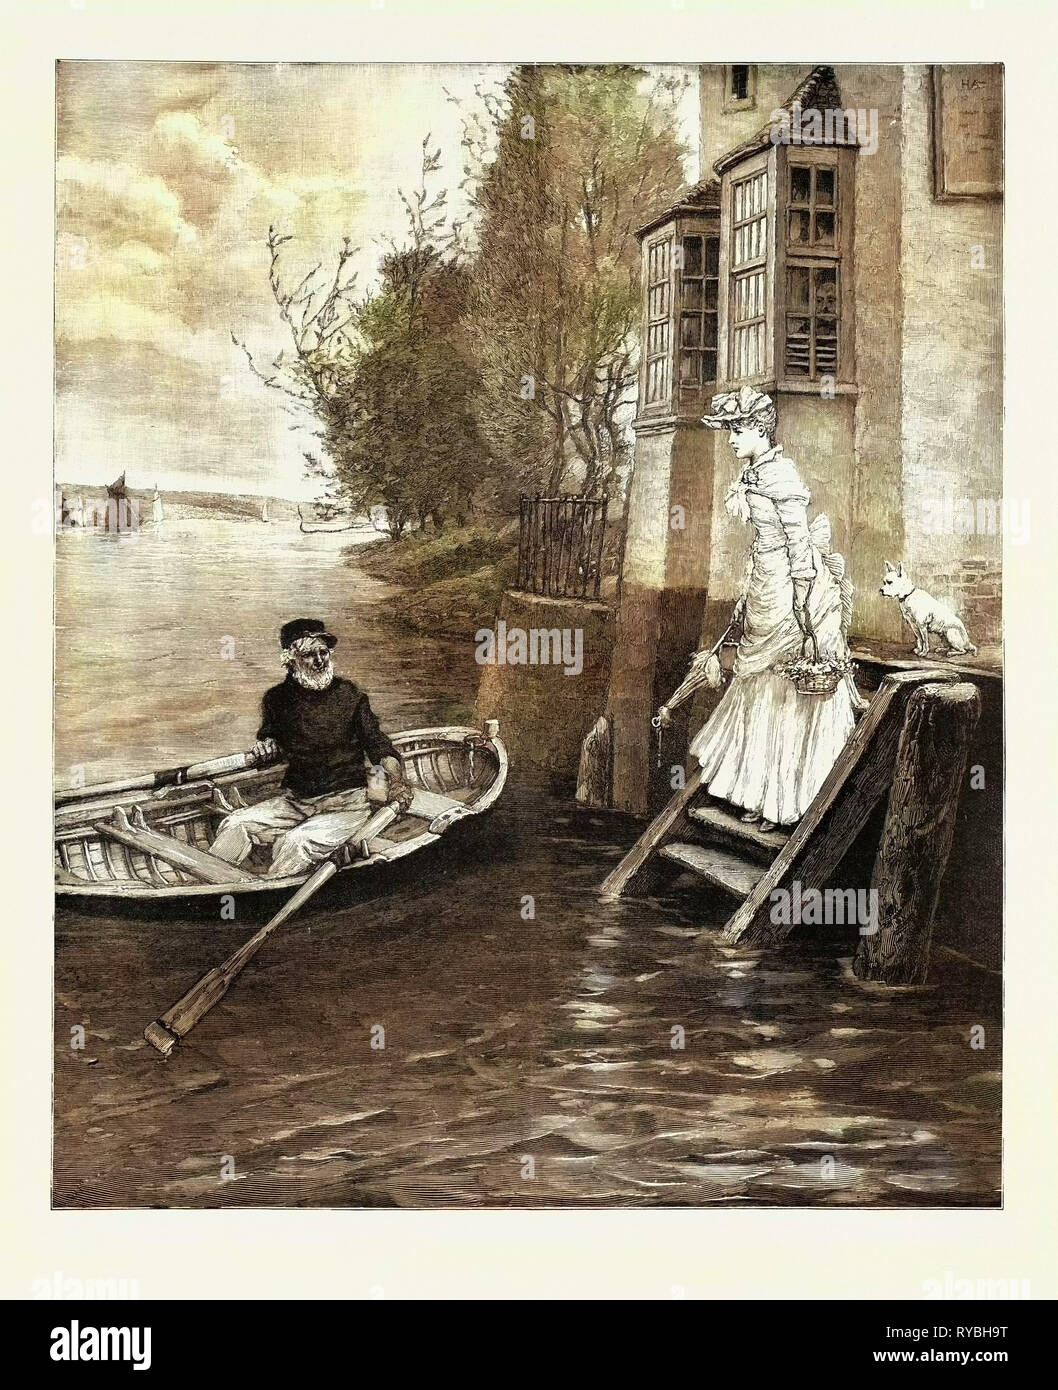 The Ferry, a Dainty Fare, 1890 Engraving - Stock Image